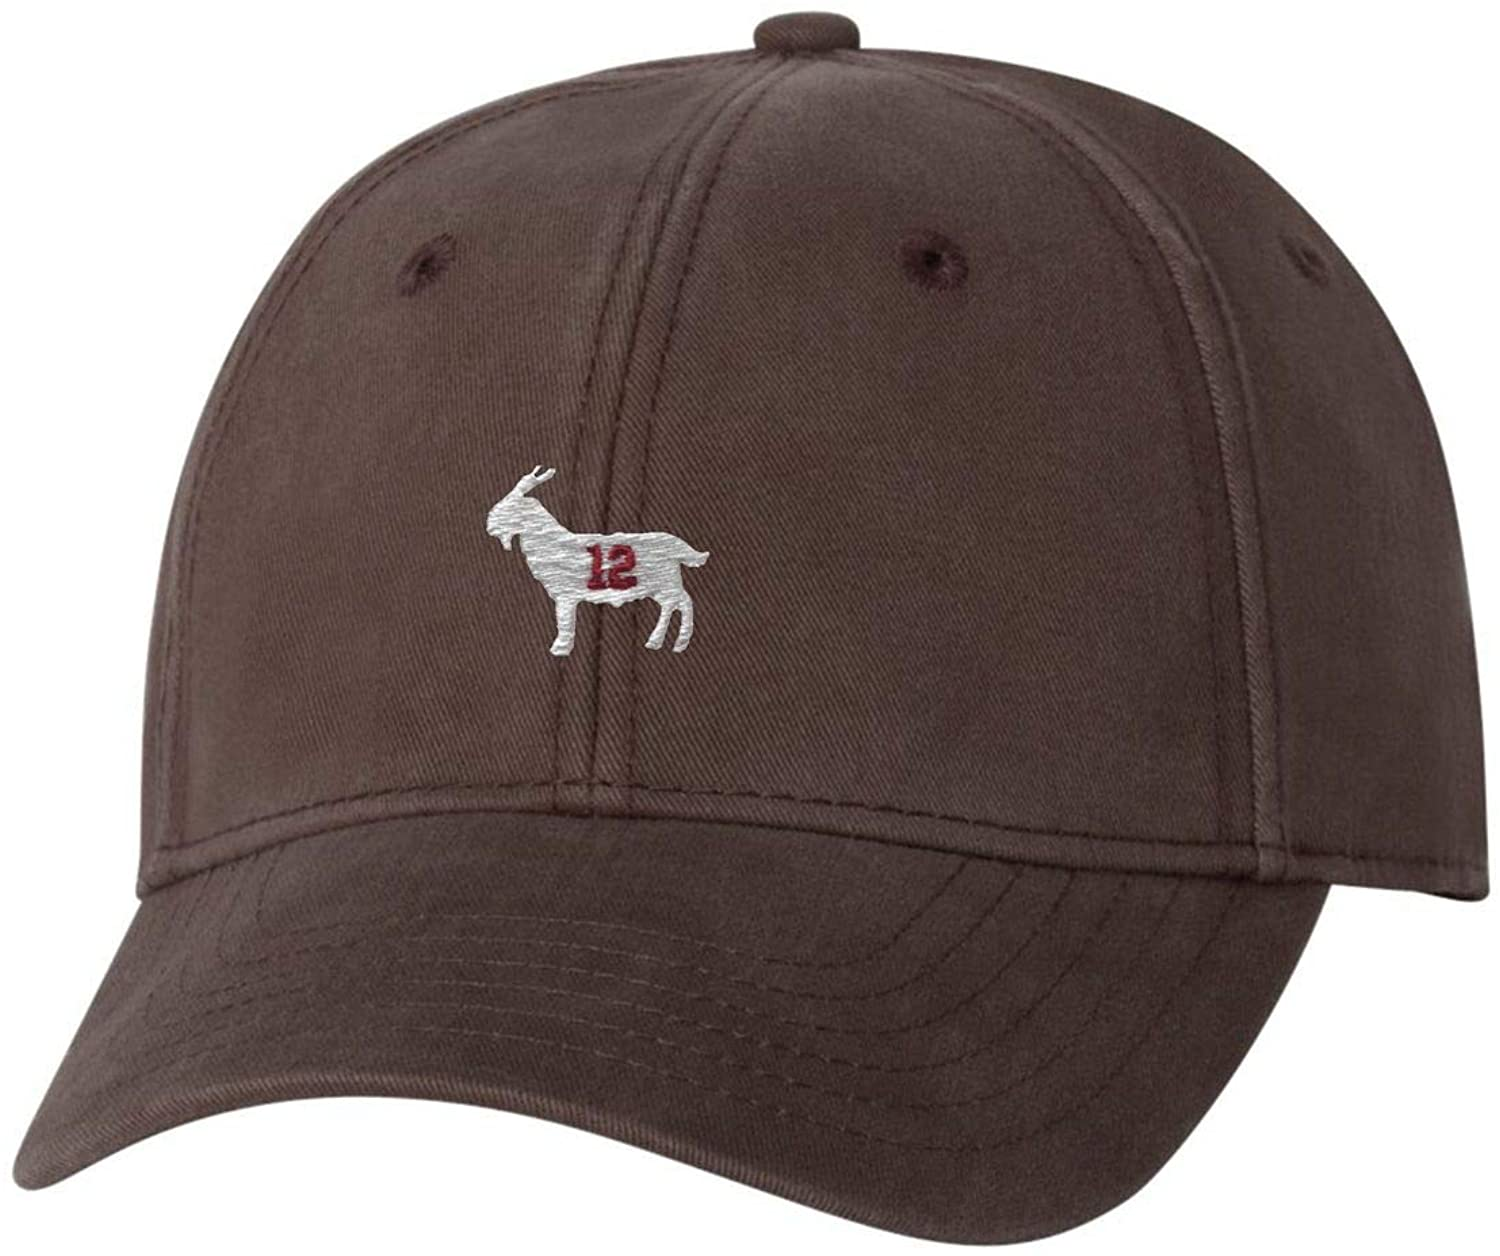 Go All Out Adult Goat #12 Embroidered Dad Hat Structured Cap